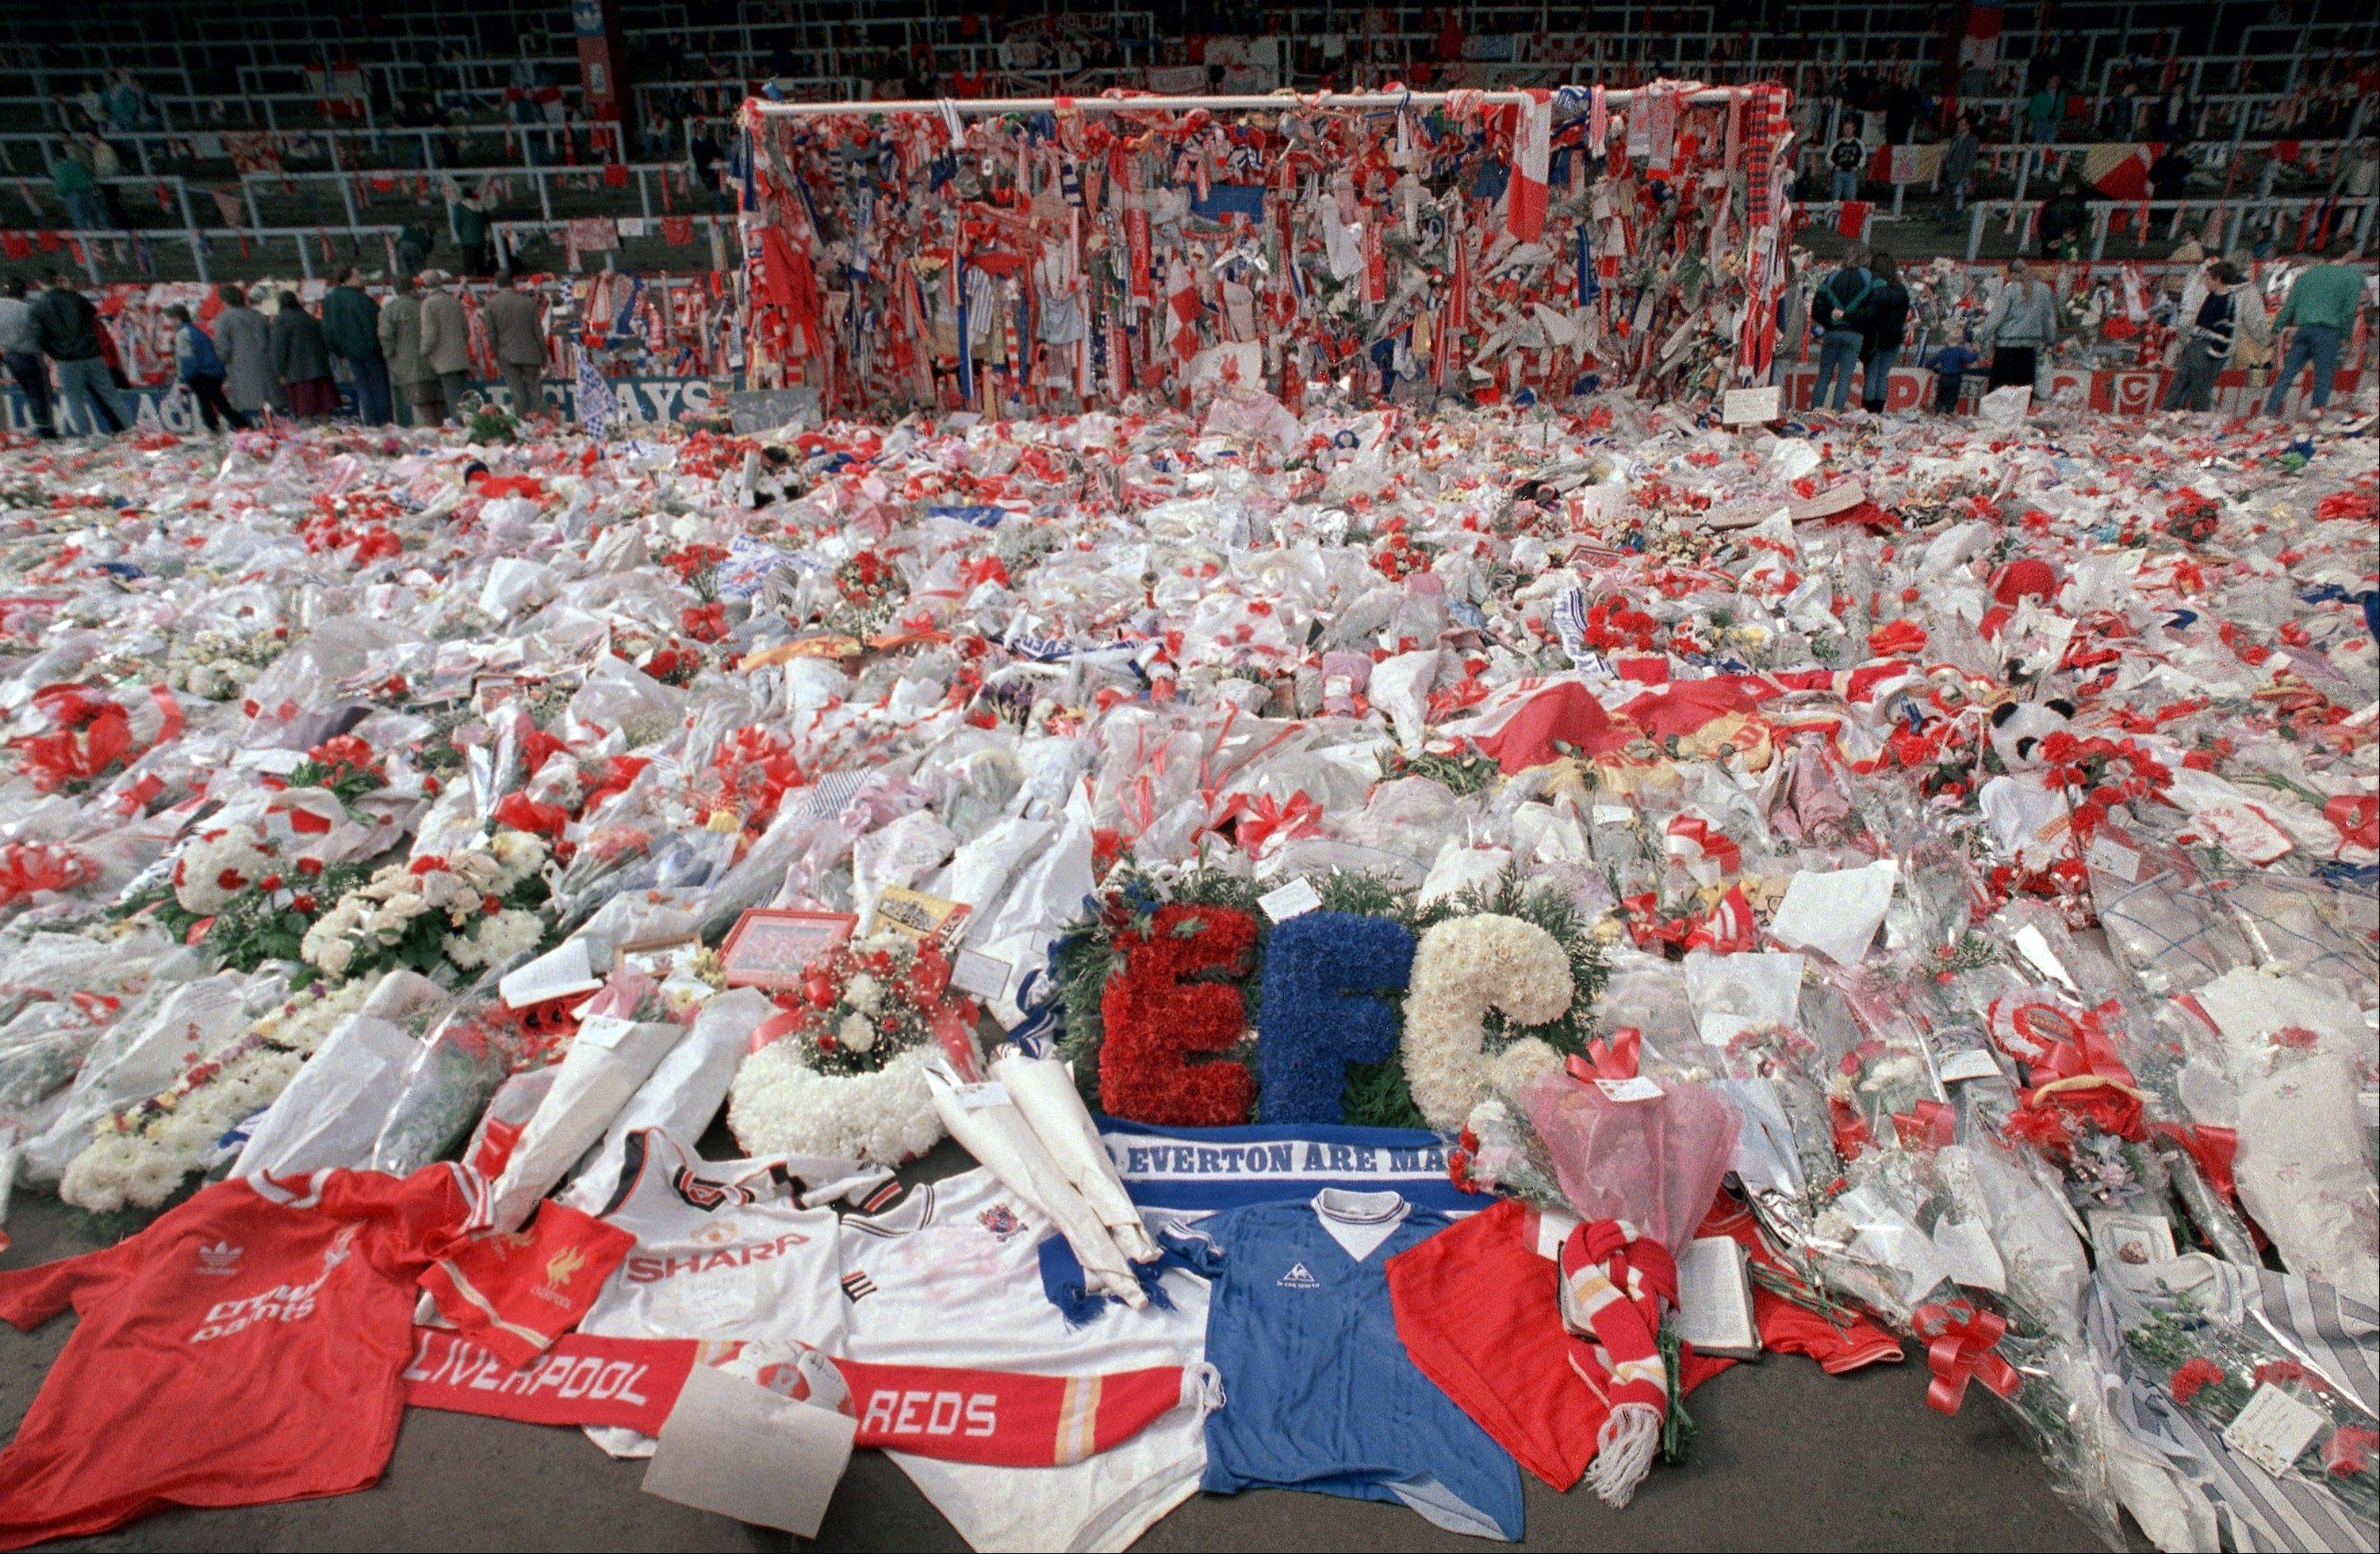 Liverpool soccer fans arrive at Anfield Stadium to pay their respects as flower tributes cover the 'Kop' end of the field, in Liverpool, on April 17, 1989, following April 15, when fans surged forward during the FA Cup semi-final between Liverpool and Nottingham Forest at Hillsborough Stadium in Sheffield, when the crash barriers gave way, killing 96 Liverpool fans and injuring over 200 others. After a long campaign by relatives of the 96 soccer fans who were crushed to death in Britainís worst sporting disaster, some 400,000 pages of previously undisclosed papers will be released Wednesday Sept. 12, 2012, and the previously secret documents may clarify what caused the disaster and how mistakes by British authorities may have contributed to the 1989 tragedy.